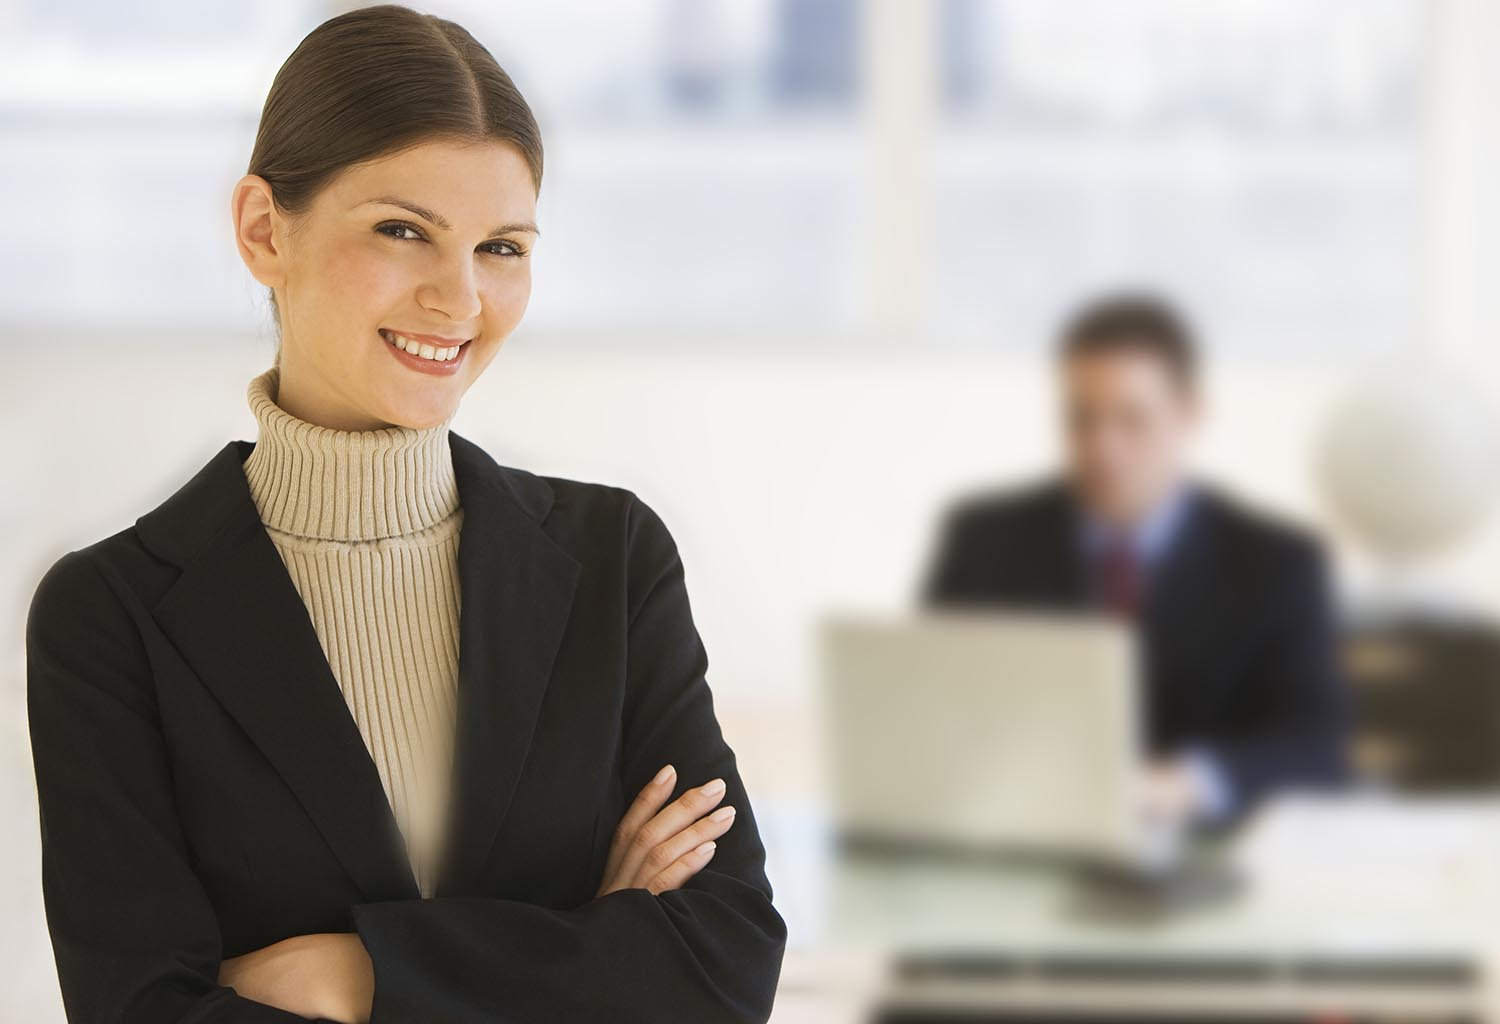 Free stock photo Business woman standing in the office